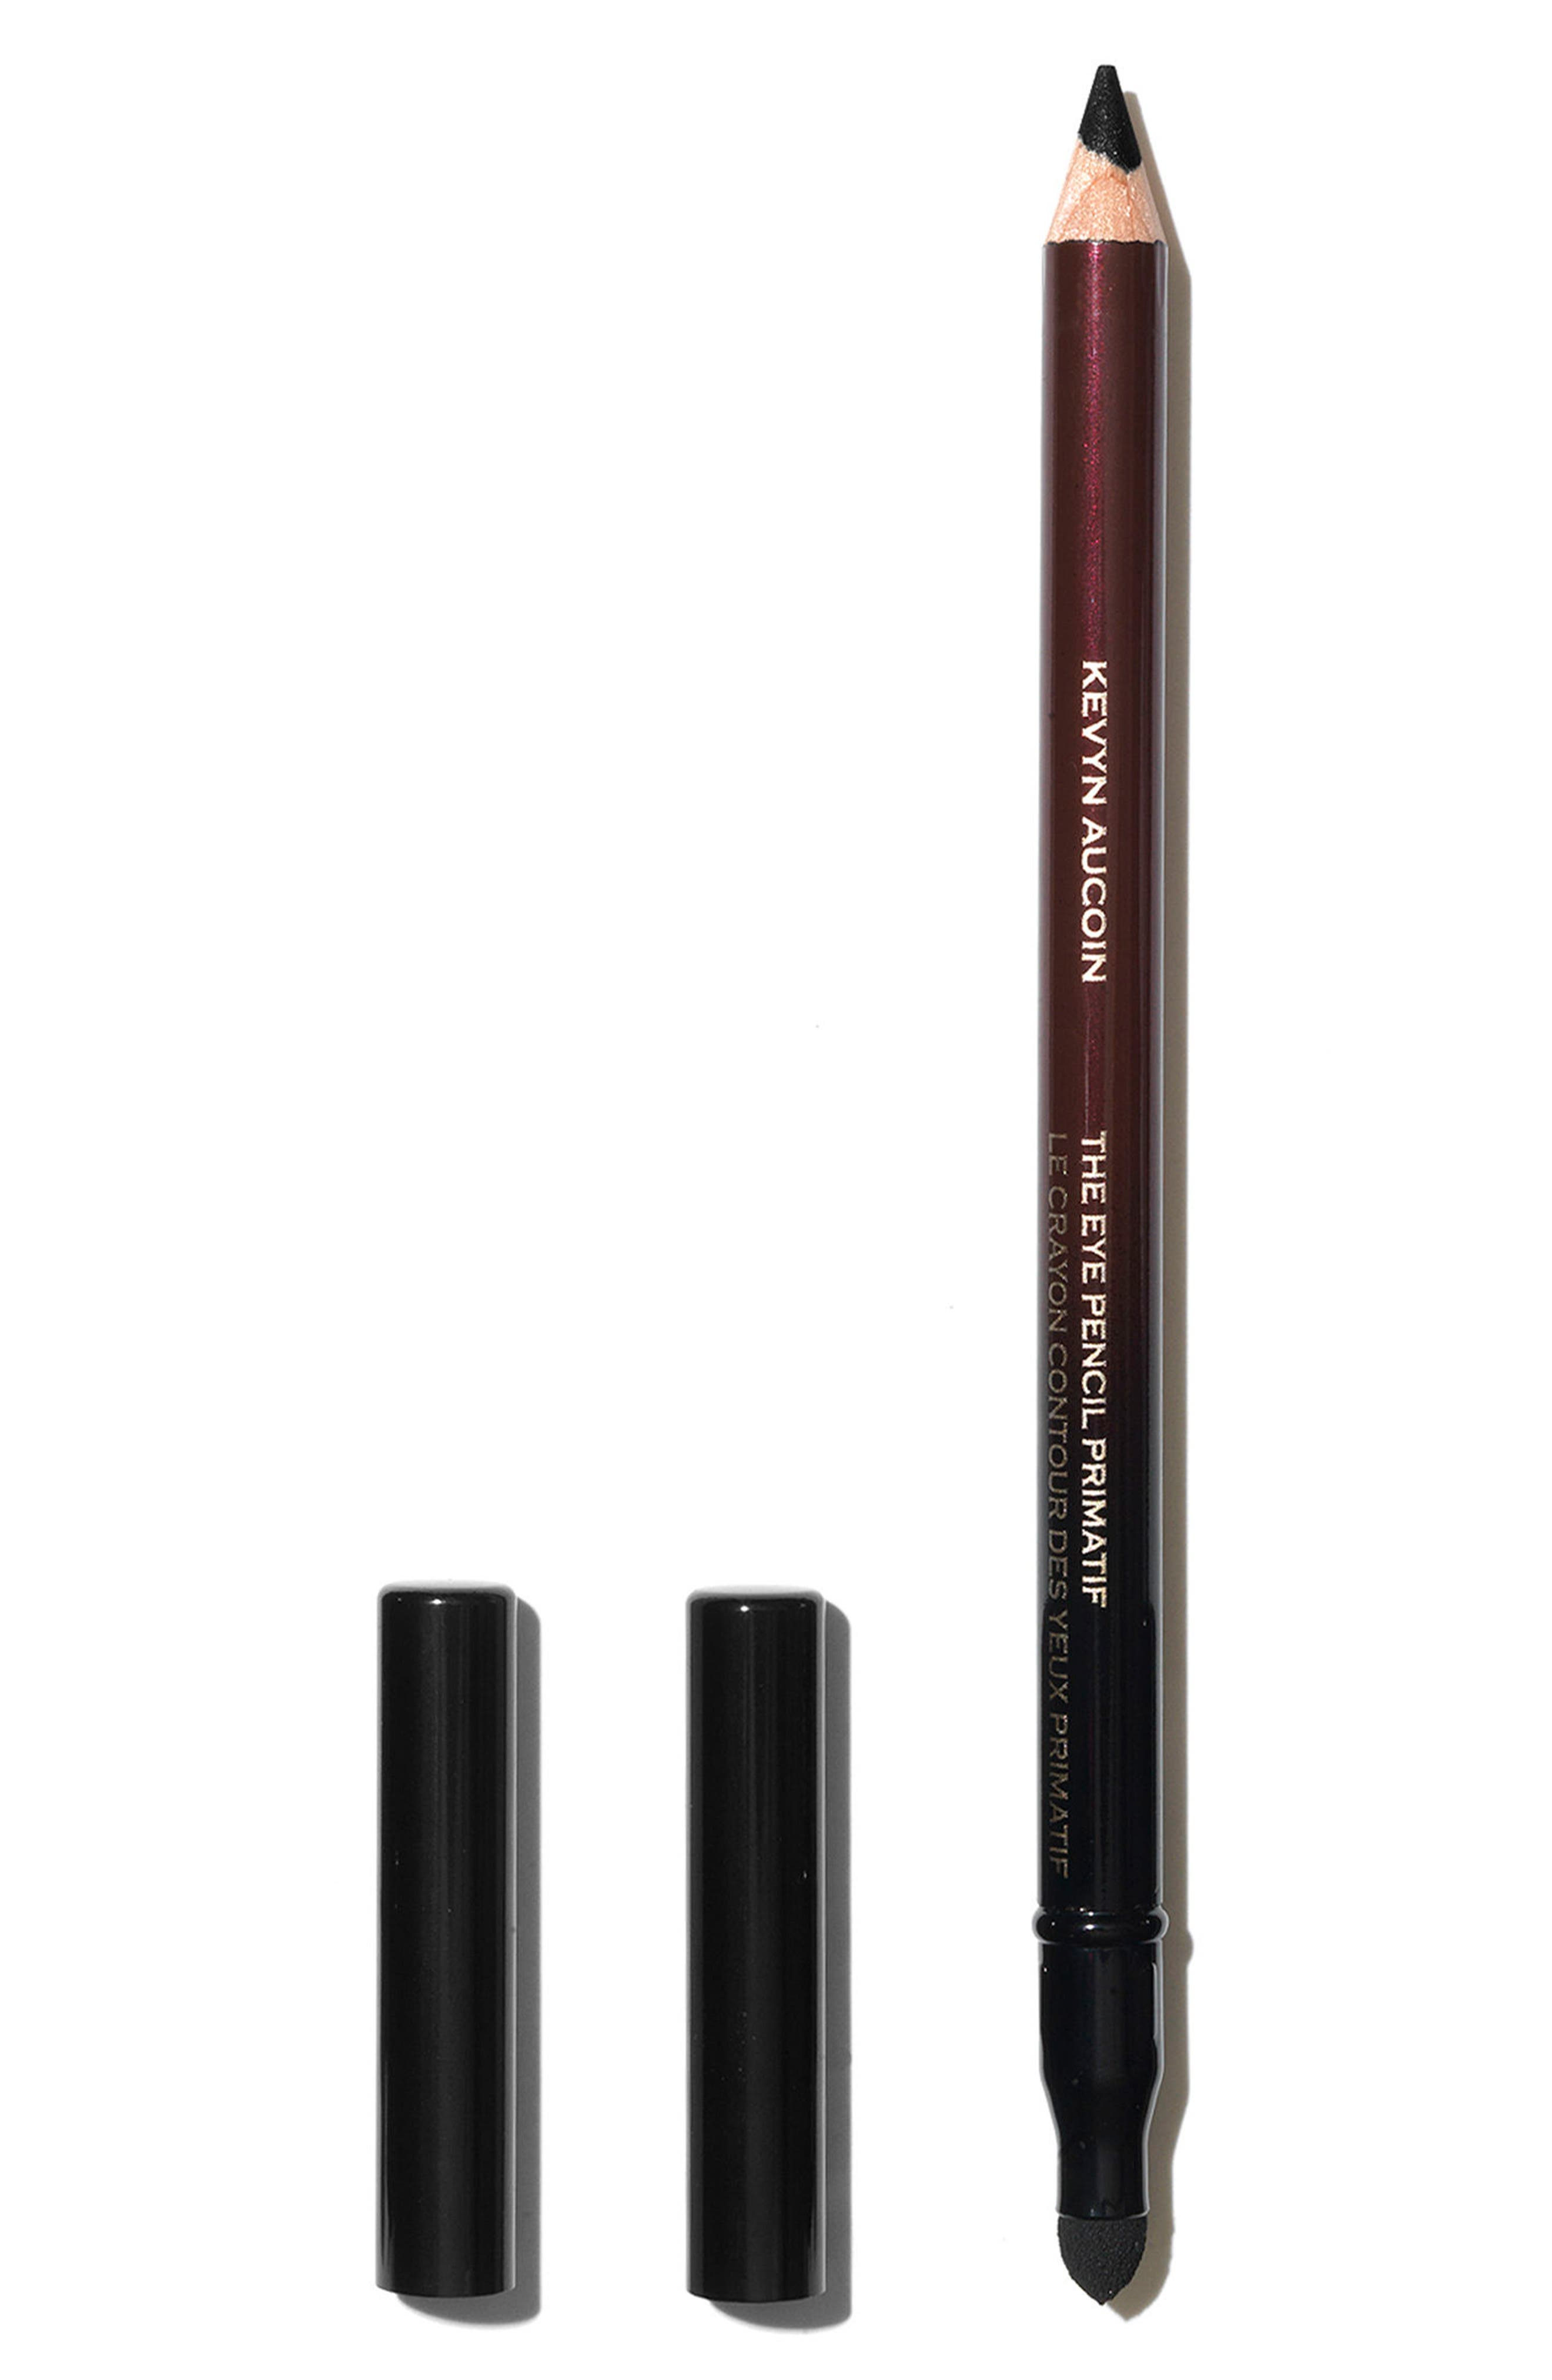 SPACE.NK.apothecary Kevyn Aucoin Beauty The Eye Pencil Primatif Pencil Eyeliner,                             Main thumbnail 1, color,                             Basic Black